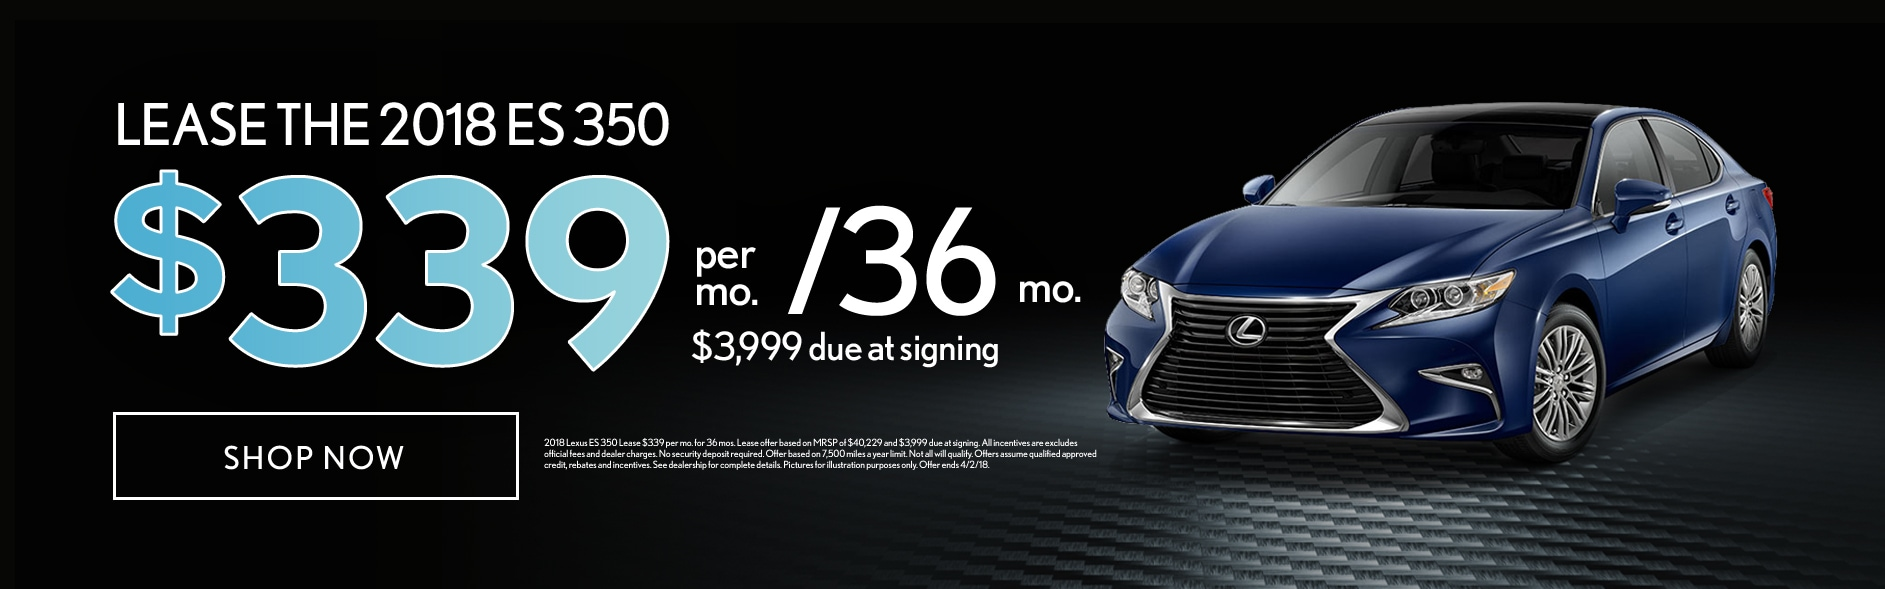 Lexus Of Kendall | New Lexus dealership in Miami, FL 33156